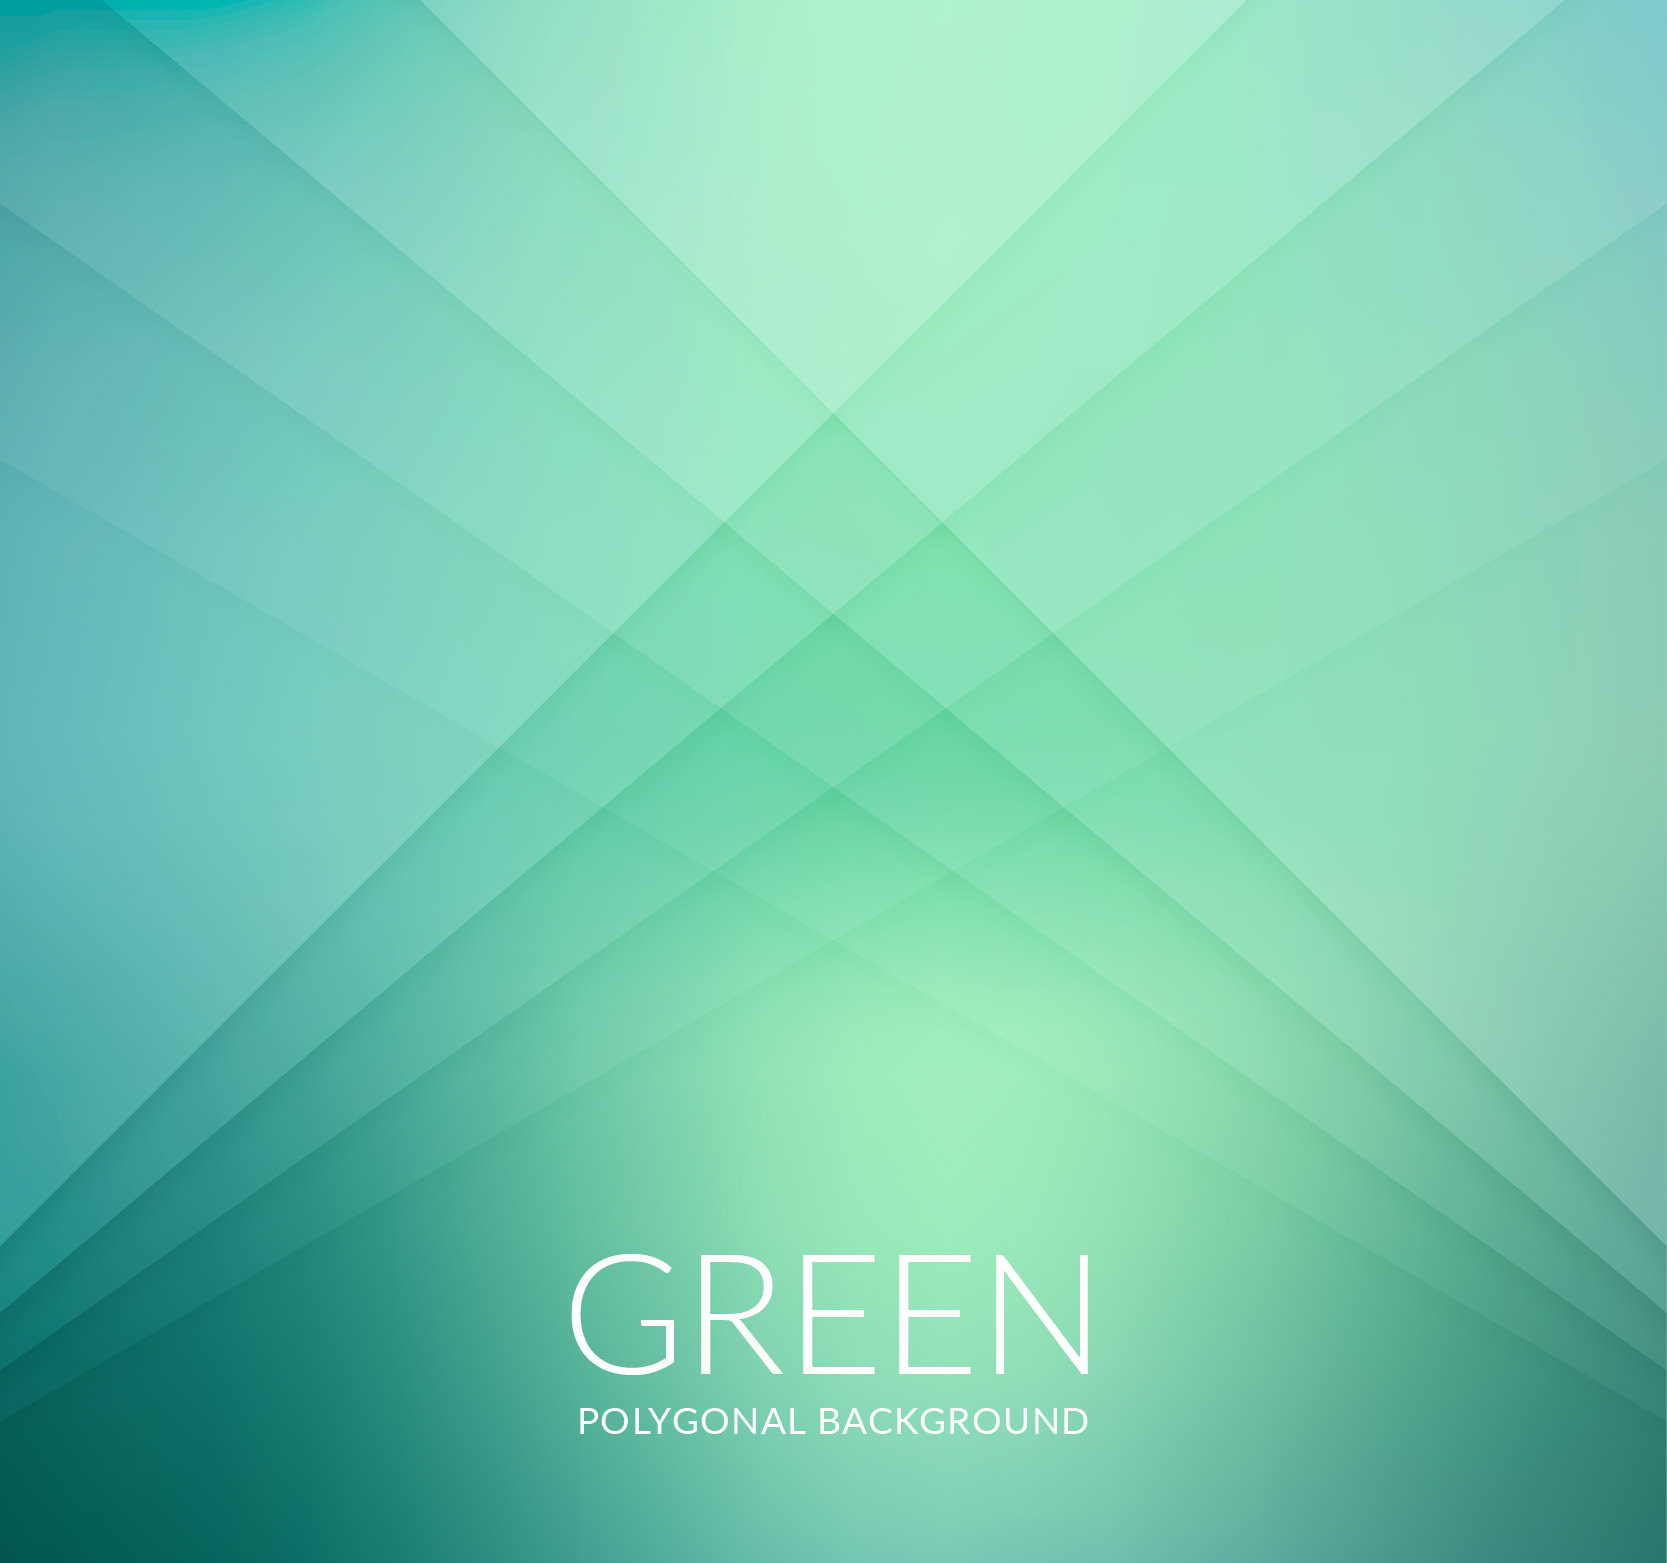 Green Polygonal Background for Free Download